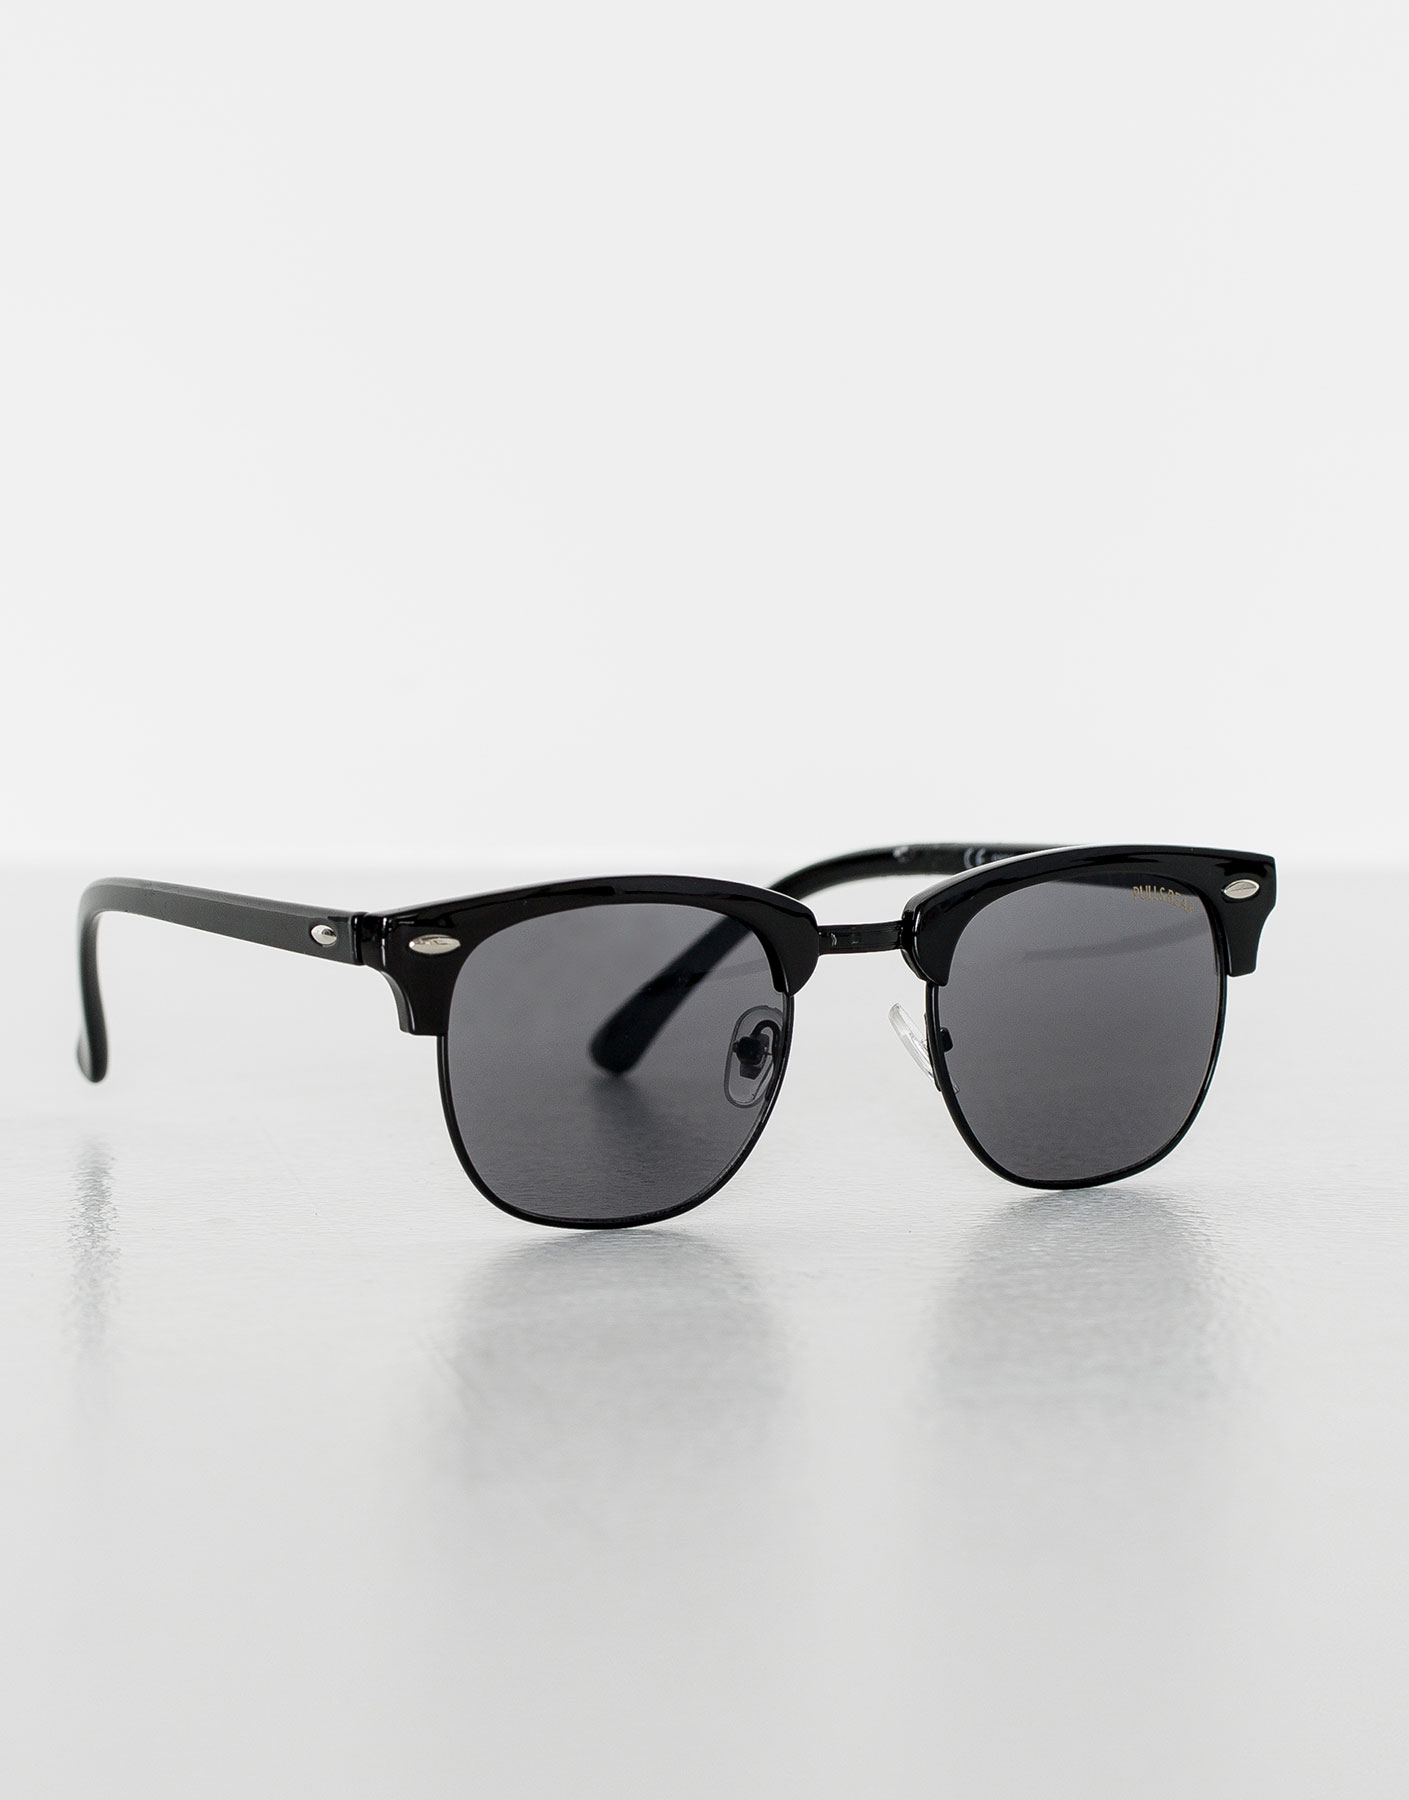 Dark lens sunglasses